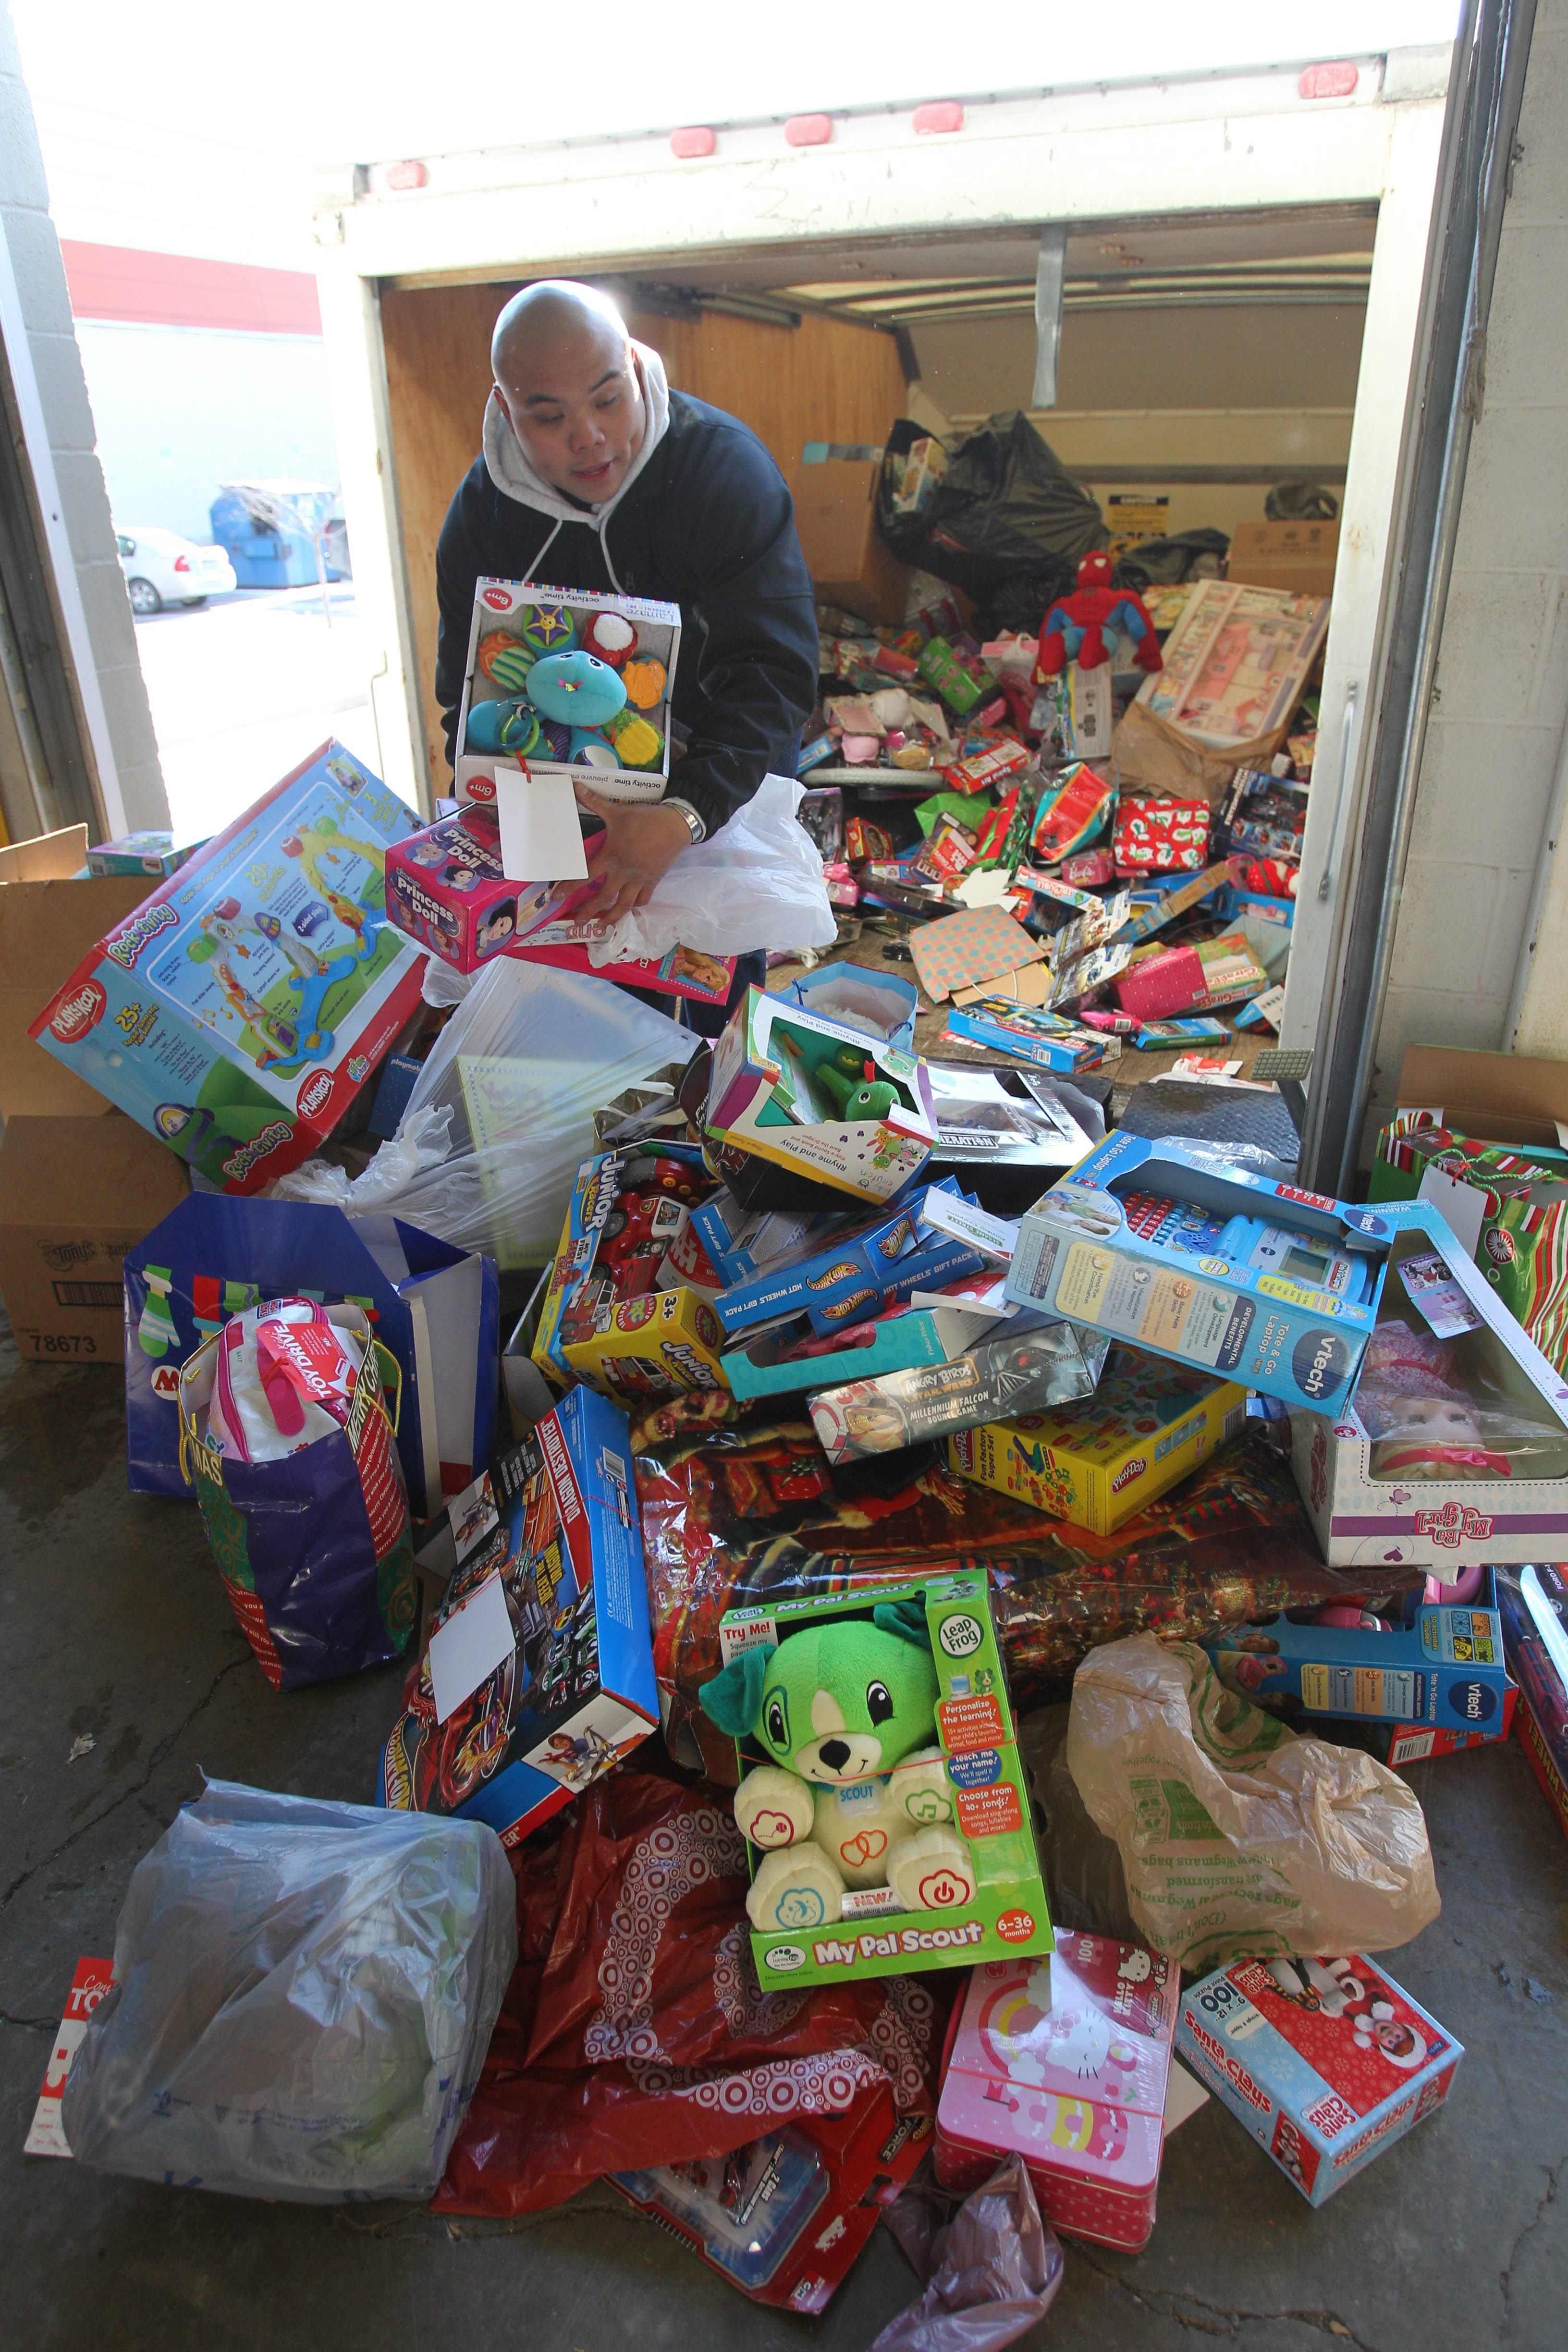 Justin Ramos helps unload toys picked up from collection sites by Marine Corps reservists at the suburban warehouse donated for use by The News Neediest.